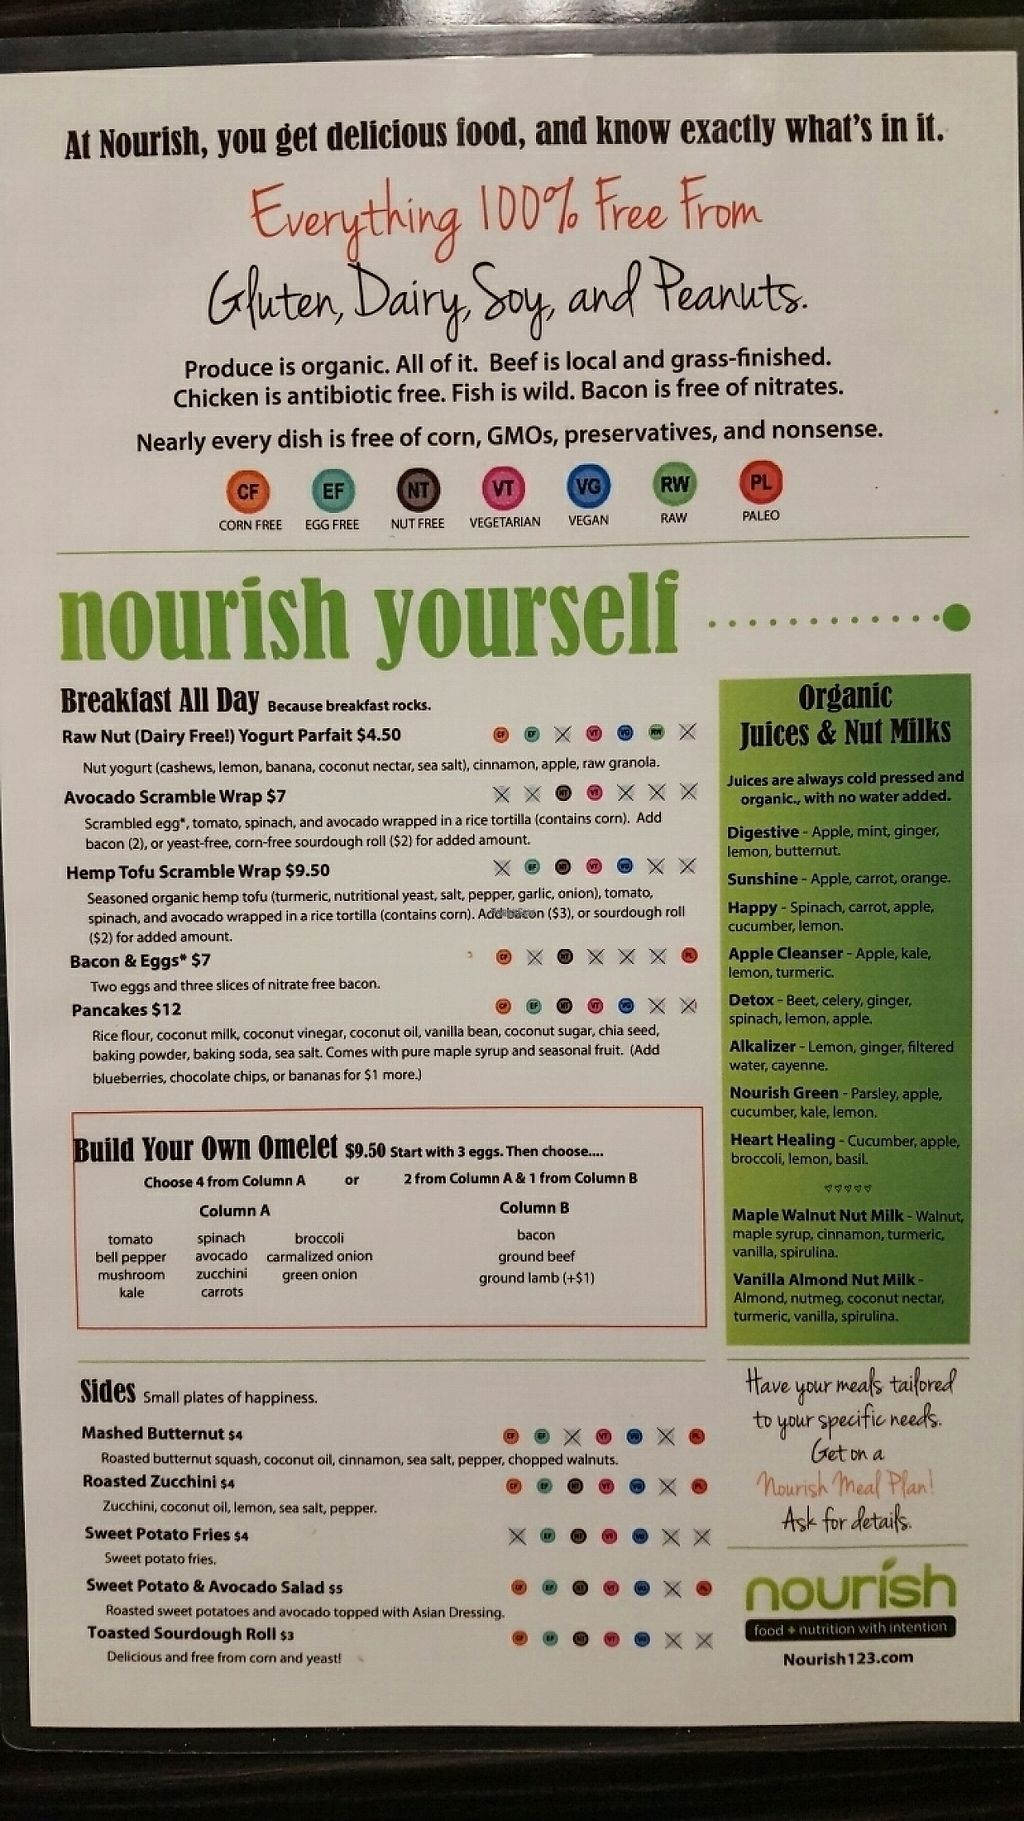 """Photo of Nourish  by <a href=""""/members/profile/missmaryxjane"""">missmaryxjane</a> <br/>menu clearly labeles allergens <br/> March 4, 2017  - <a href='/contact/abuse/image/58483/232375'>Report</a>"""